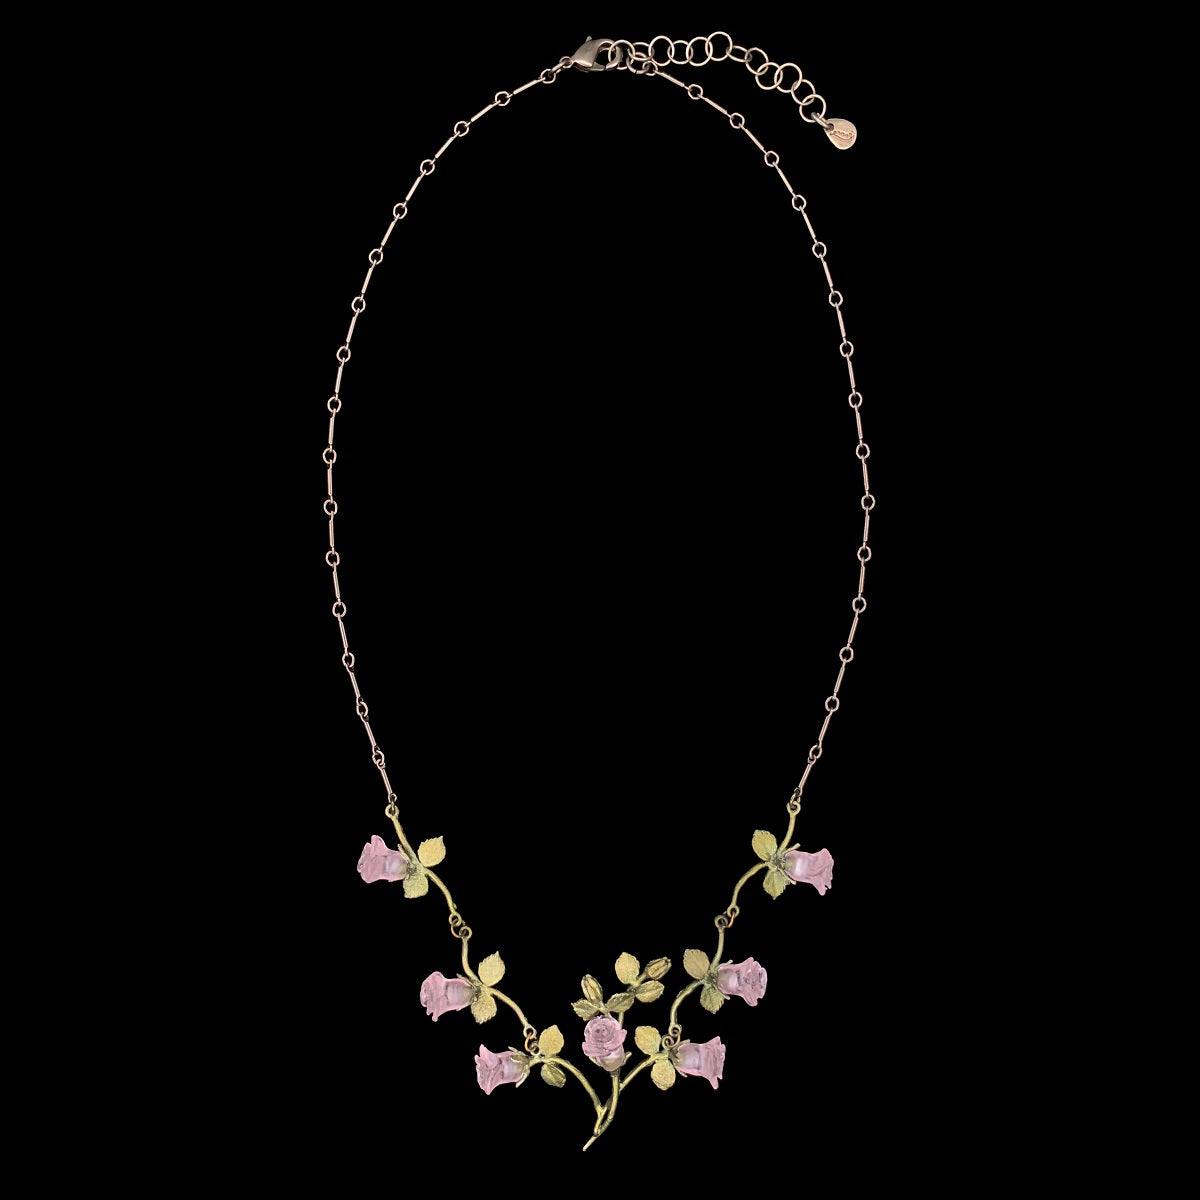 Blushing Rose Necklace - Vines